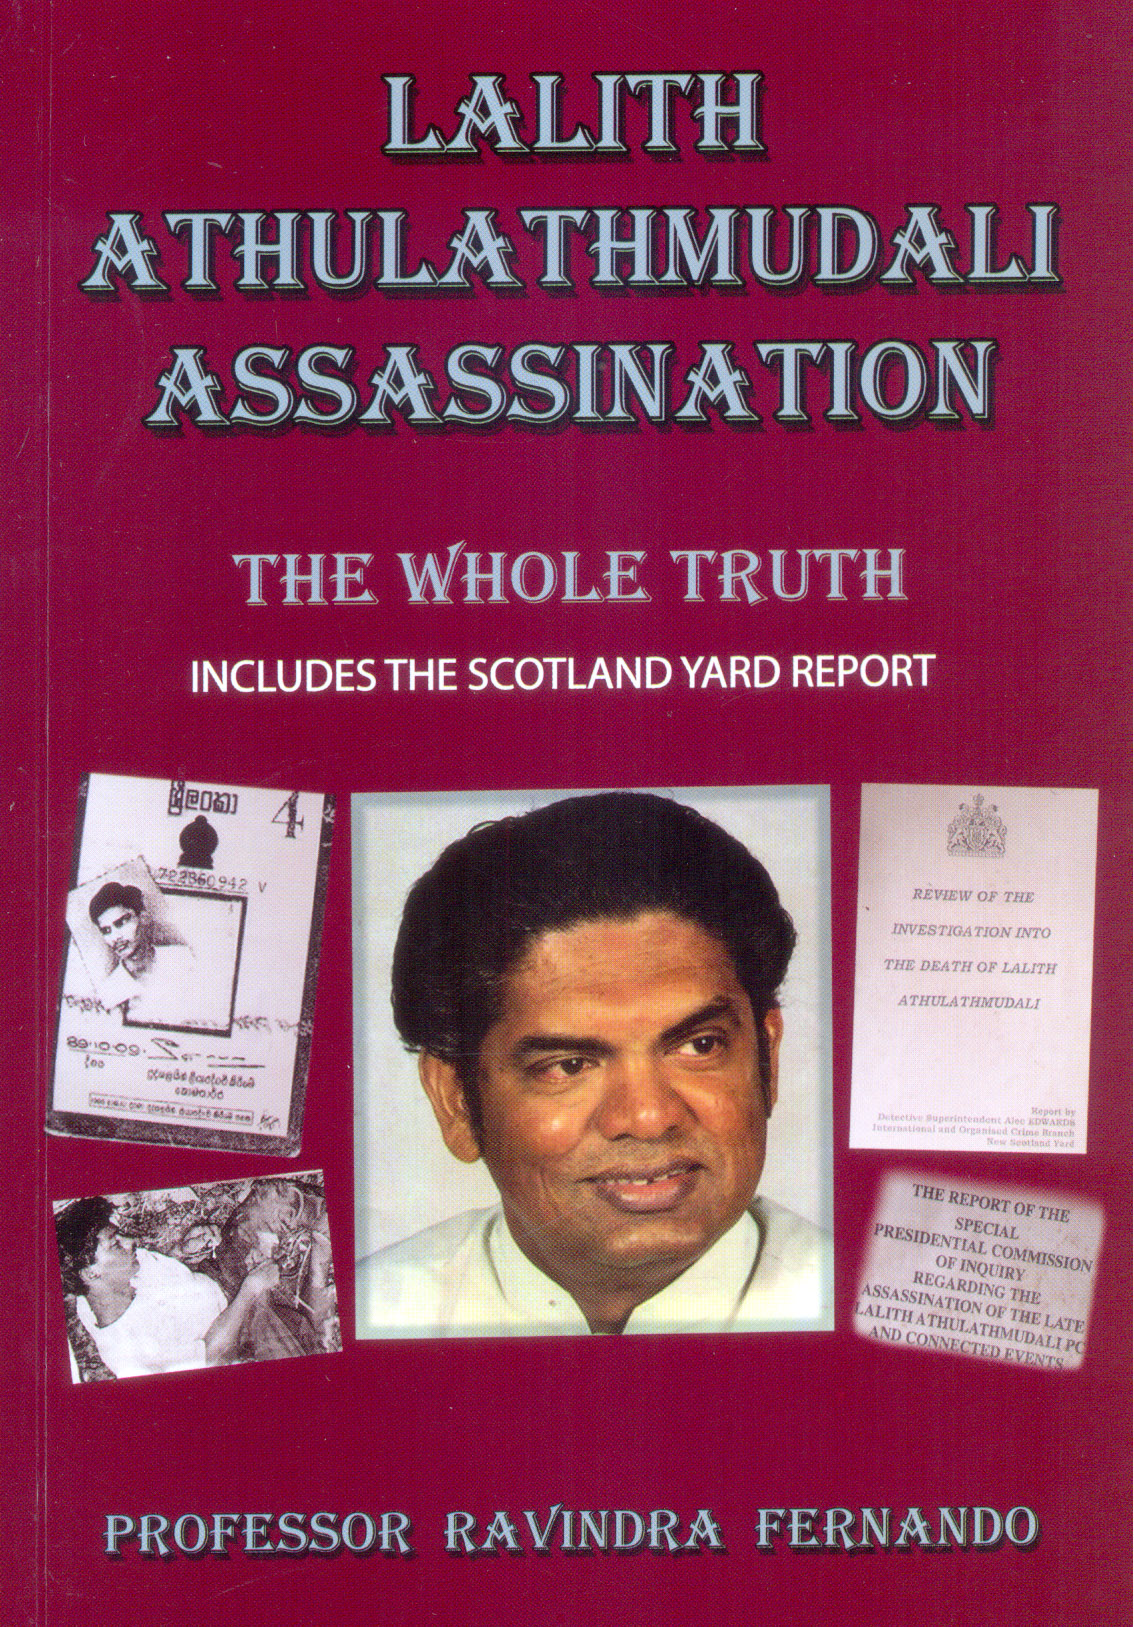 Lalith Athulathmudali Assassination : The Whole Truth